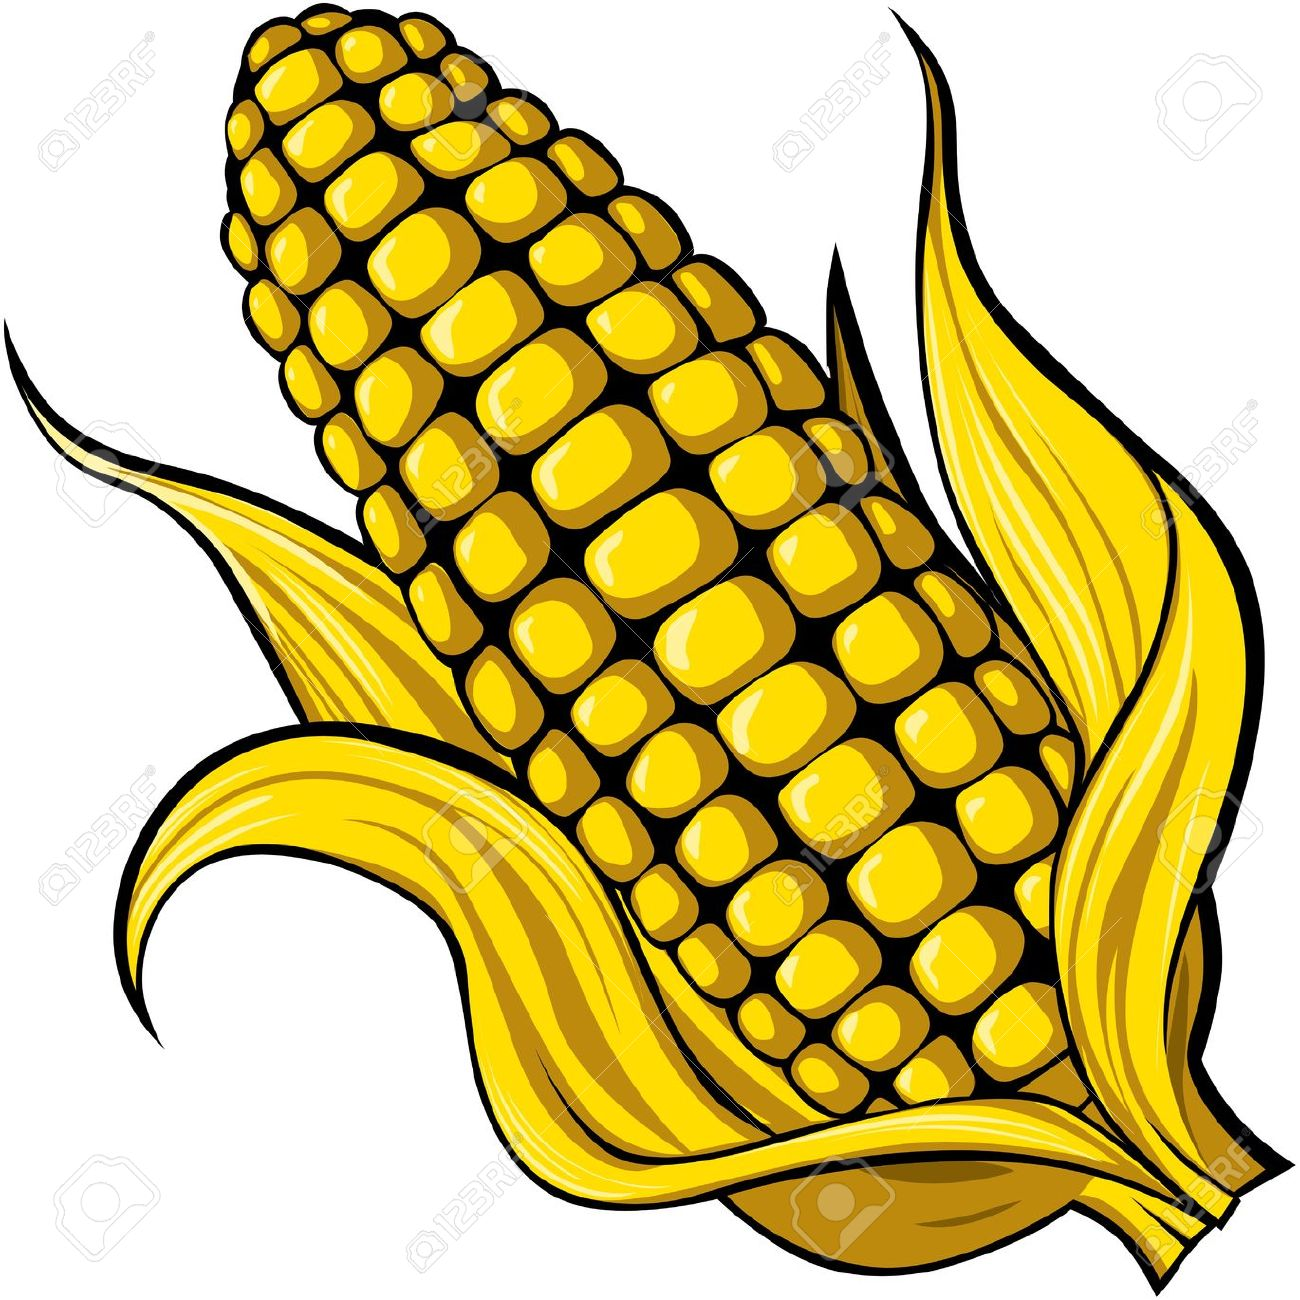 Corn Royalty Free Cliparts, Vectors, And Stock Illustration. Image.